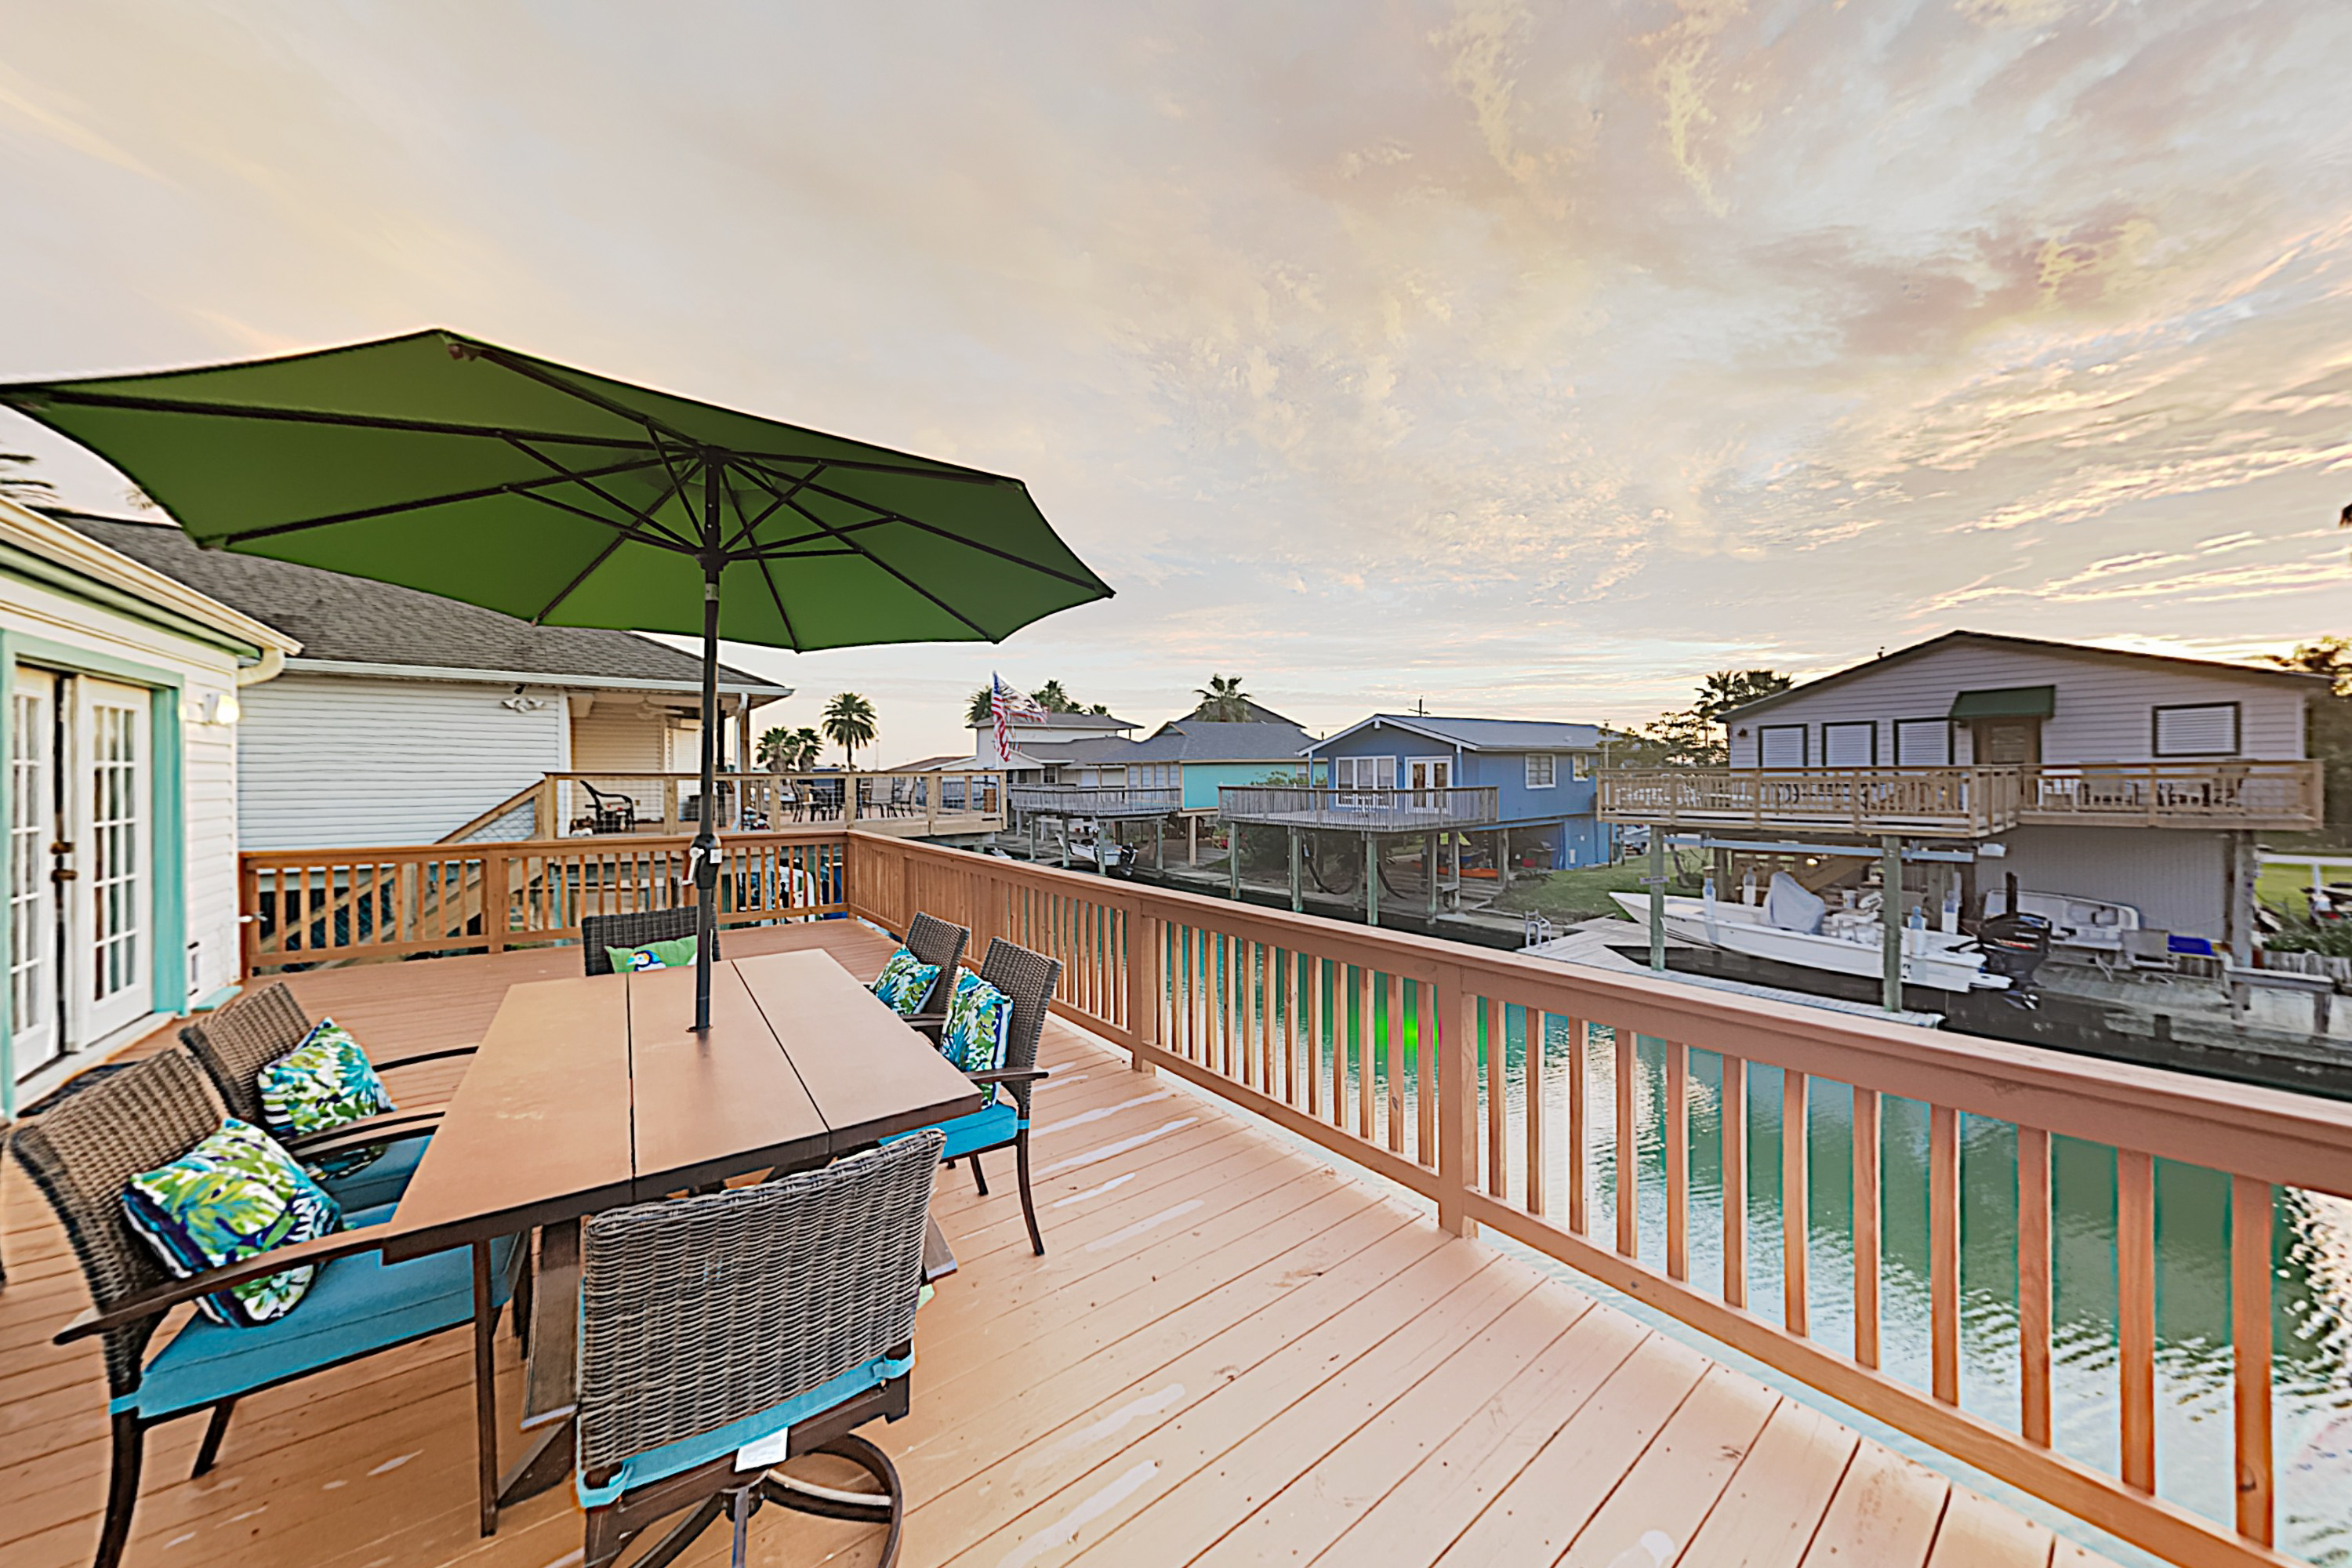 Jamaica Beach TX Vacation Rental Welcome to Jamaica